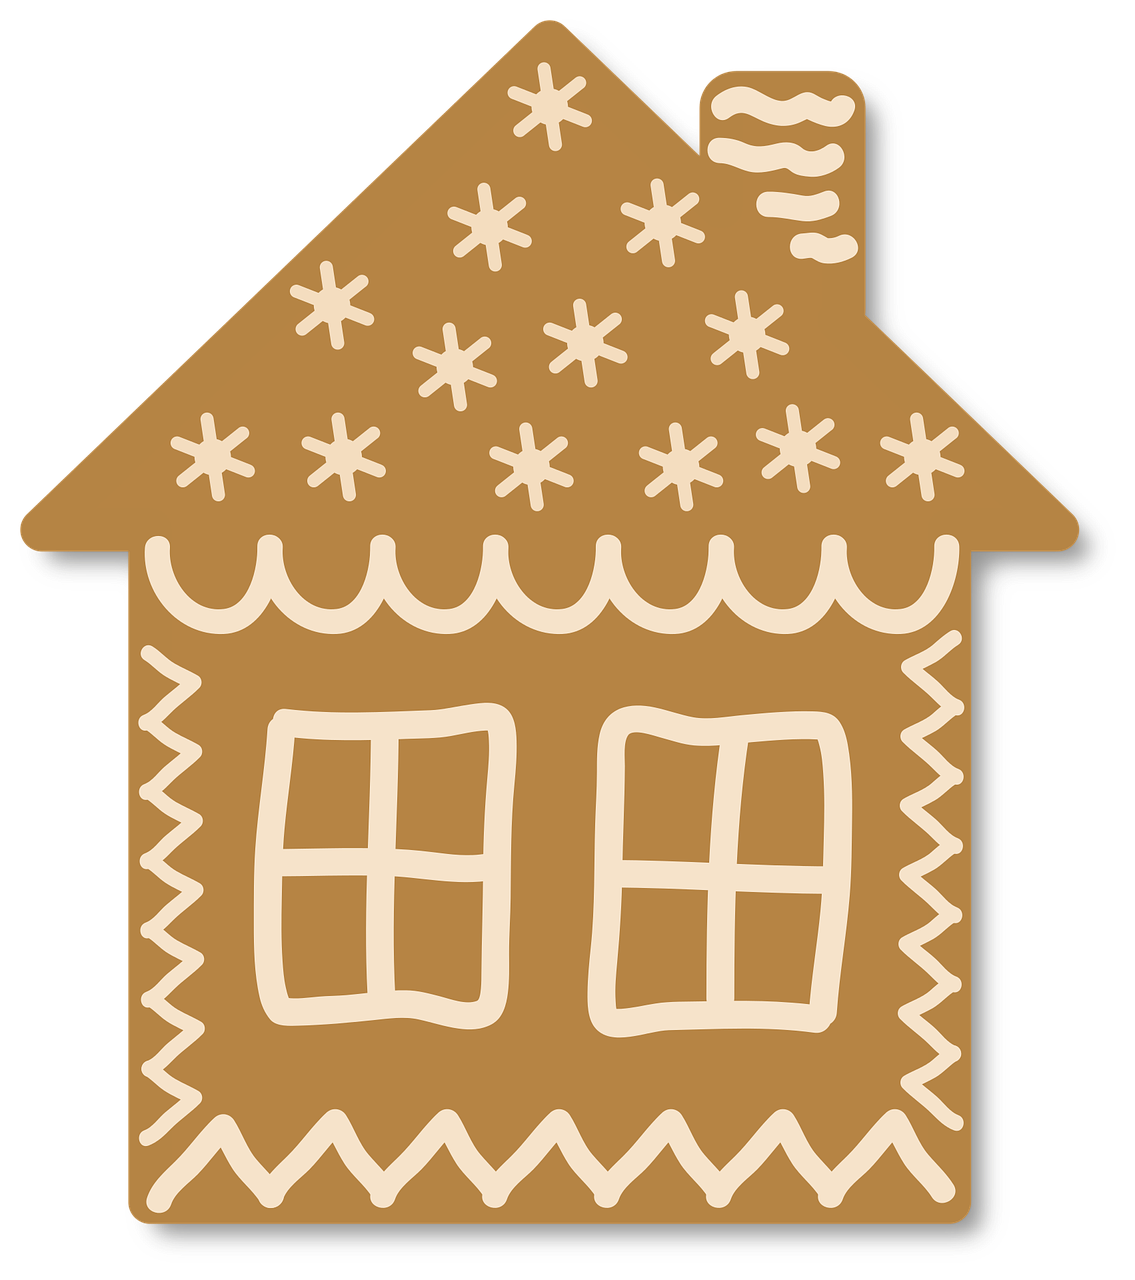 gingerbread-1819596_1280.png